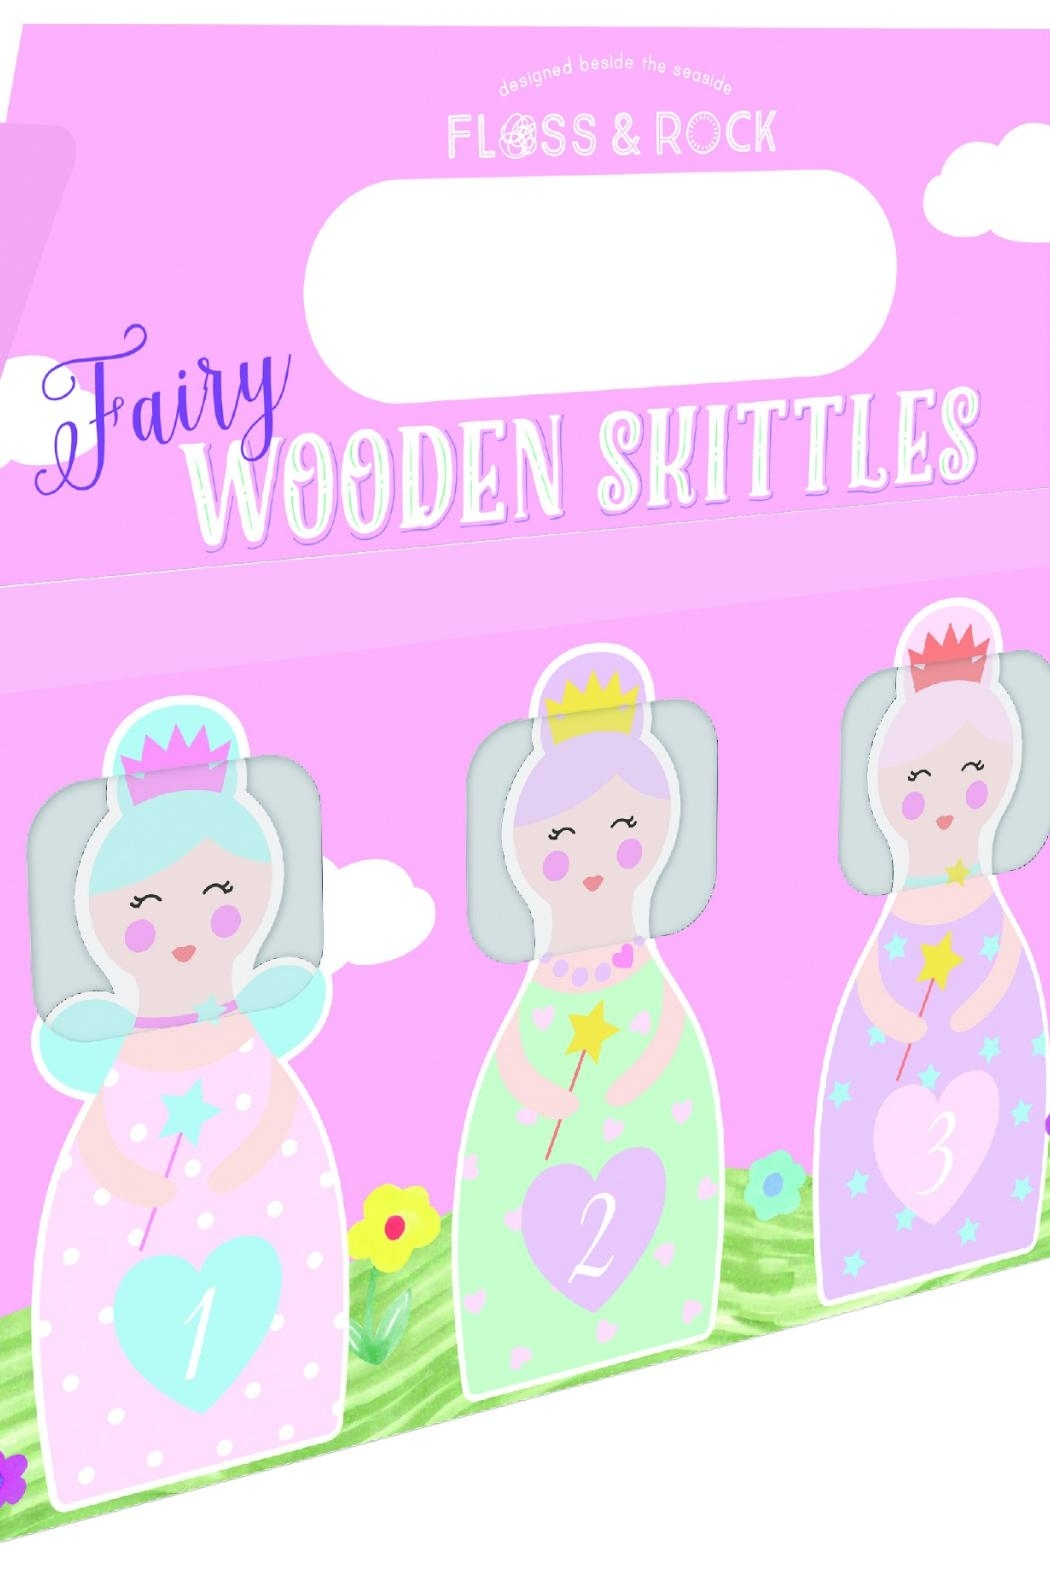 FLOSS & ROCK Wooden Fairy Skittles - Main Image